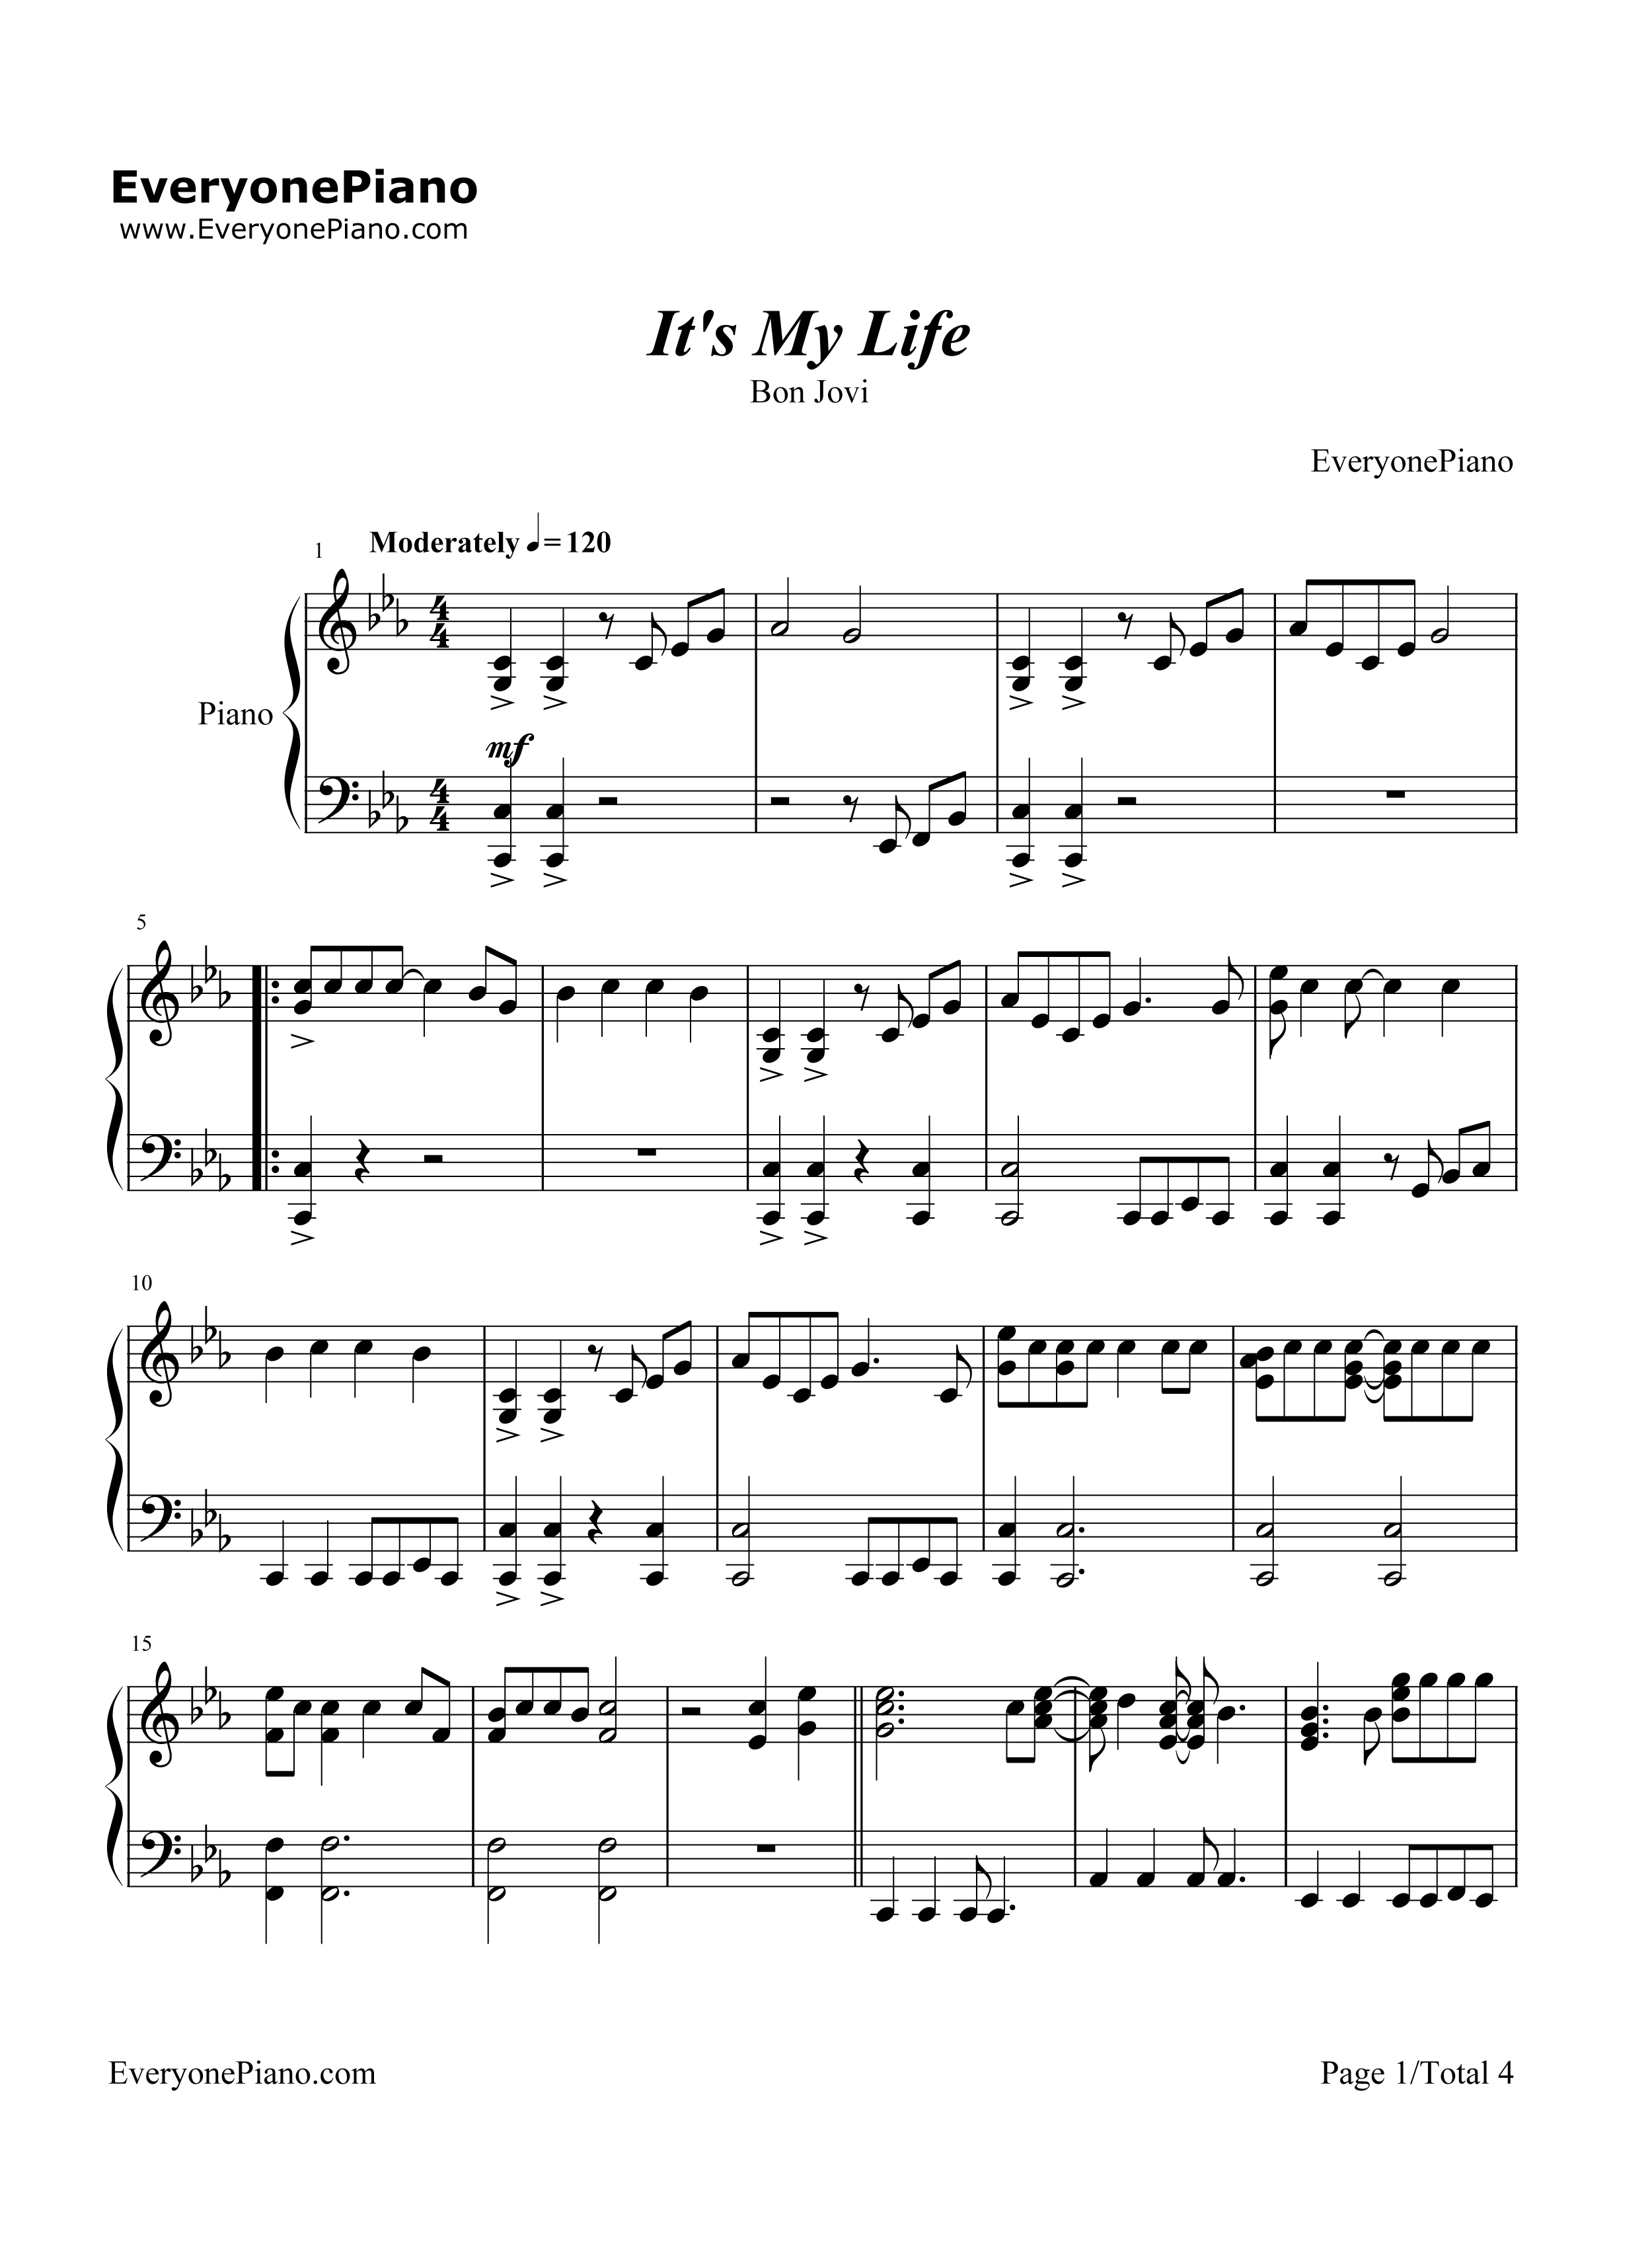 Its my life chord bon jovi stave preview 1 free piano sheet listen now print sheet its my life chord bon jovi stave preview 1 hexwebz Image collections